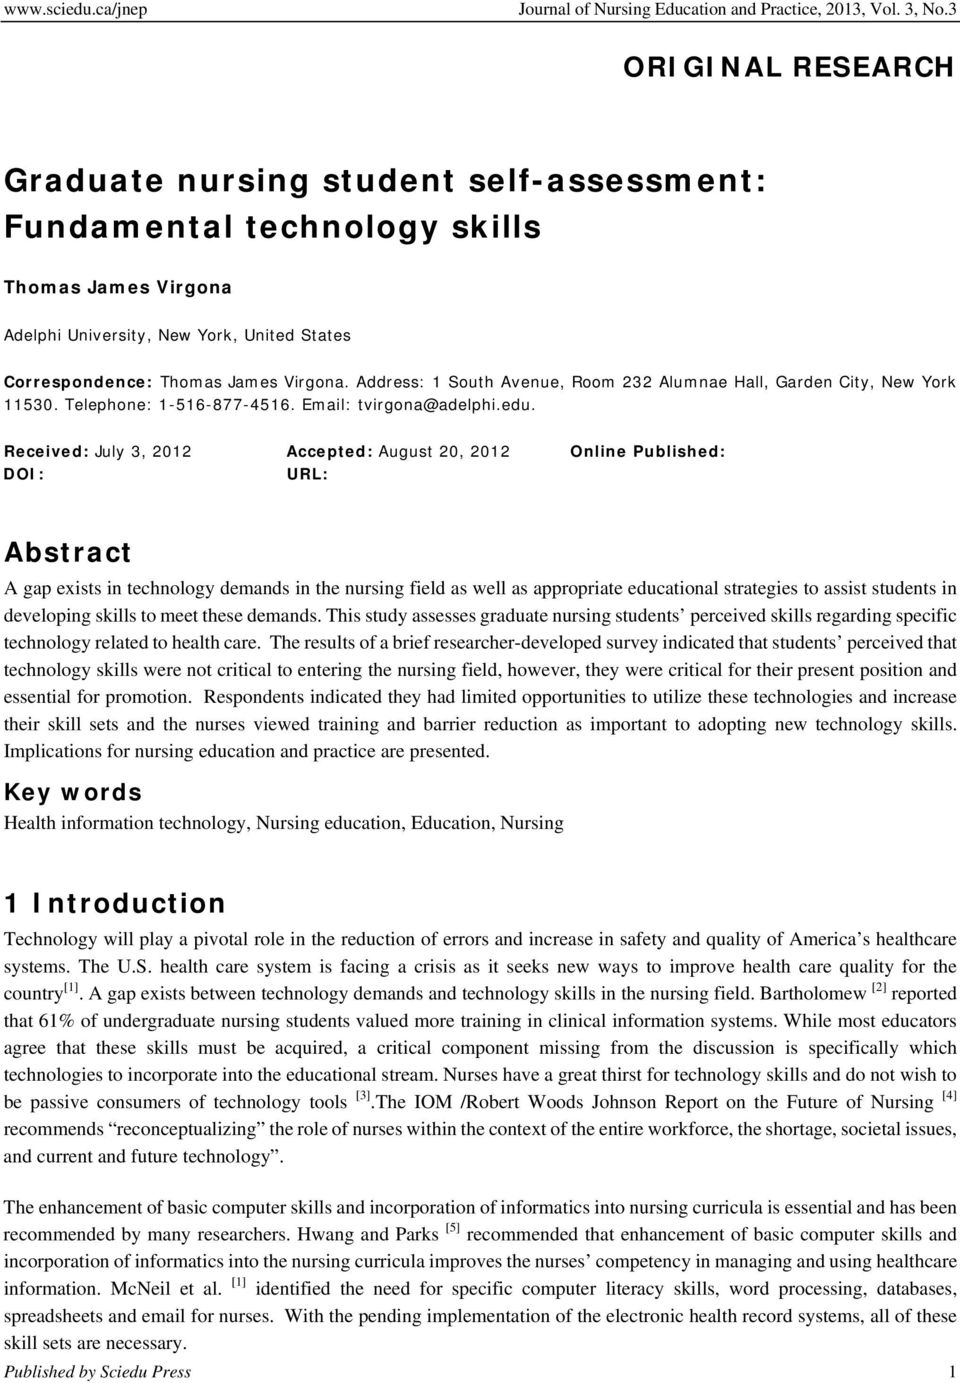 Received: July 3, 2012 Accepted: August 20, 2012 Online Published: DOI: URL: Abstract A gap exists in technology demands in the nursing field as well as appropriate educational strategies to assist